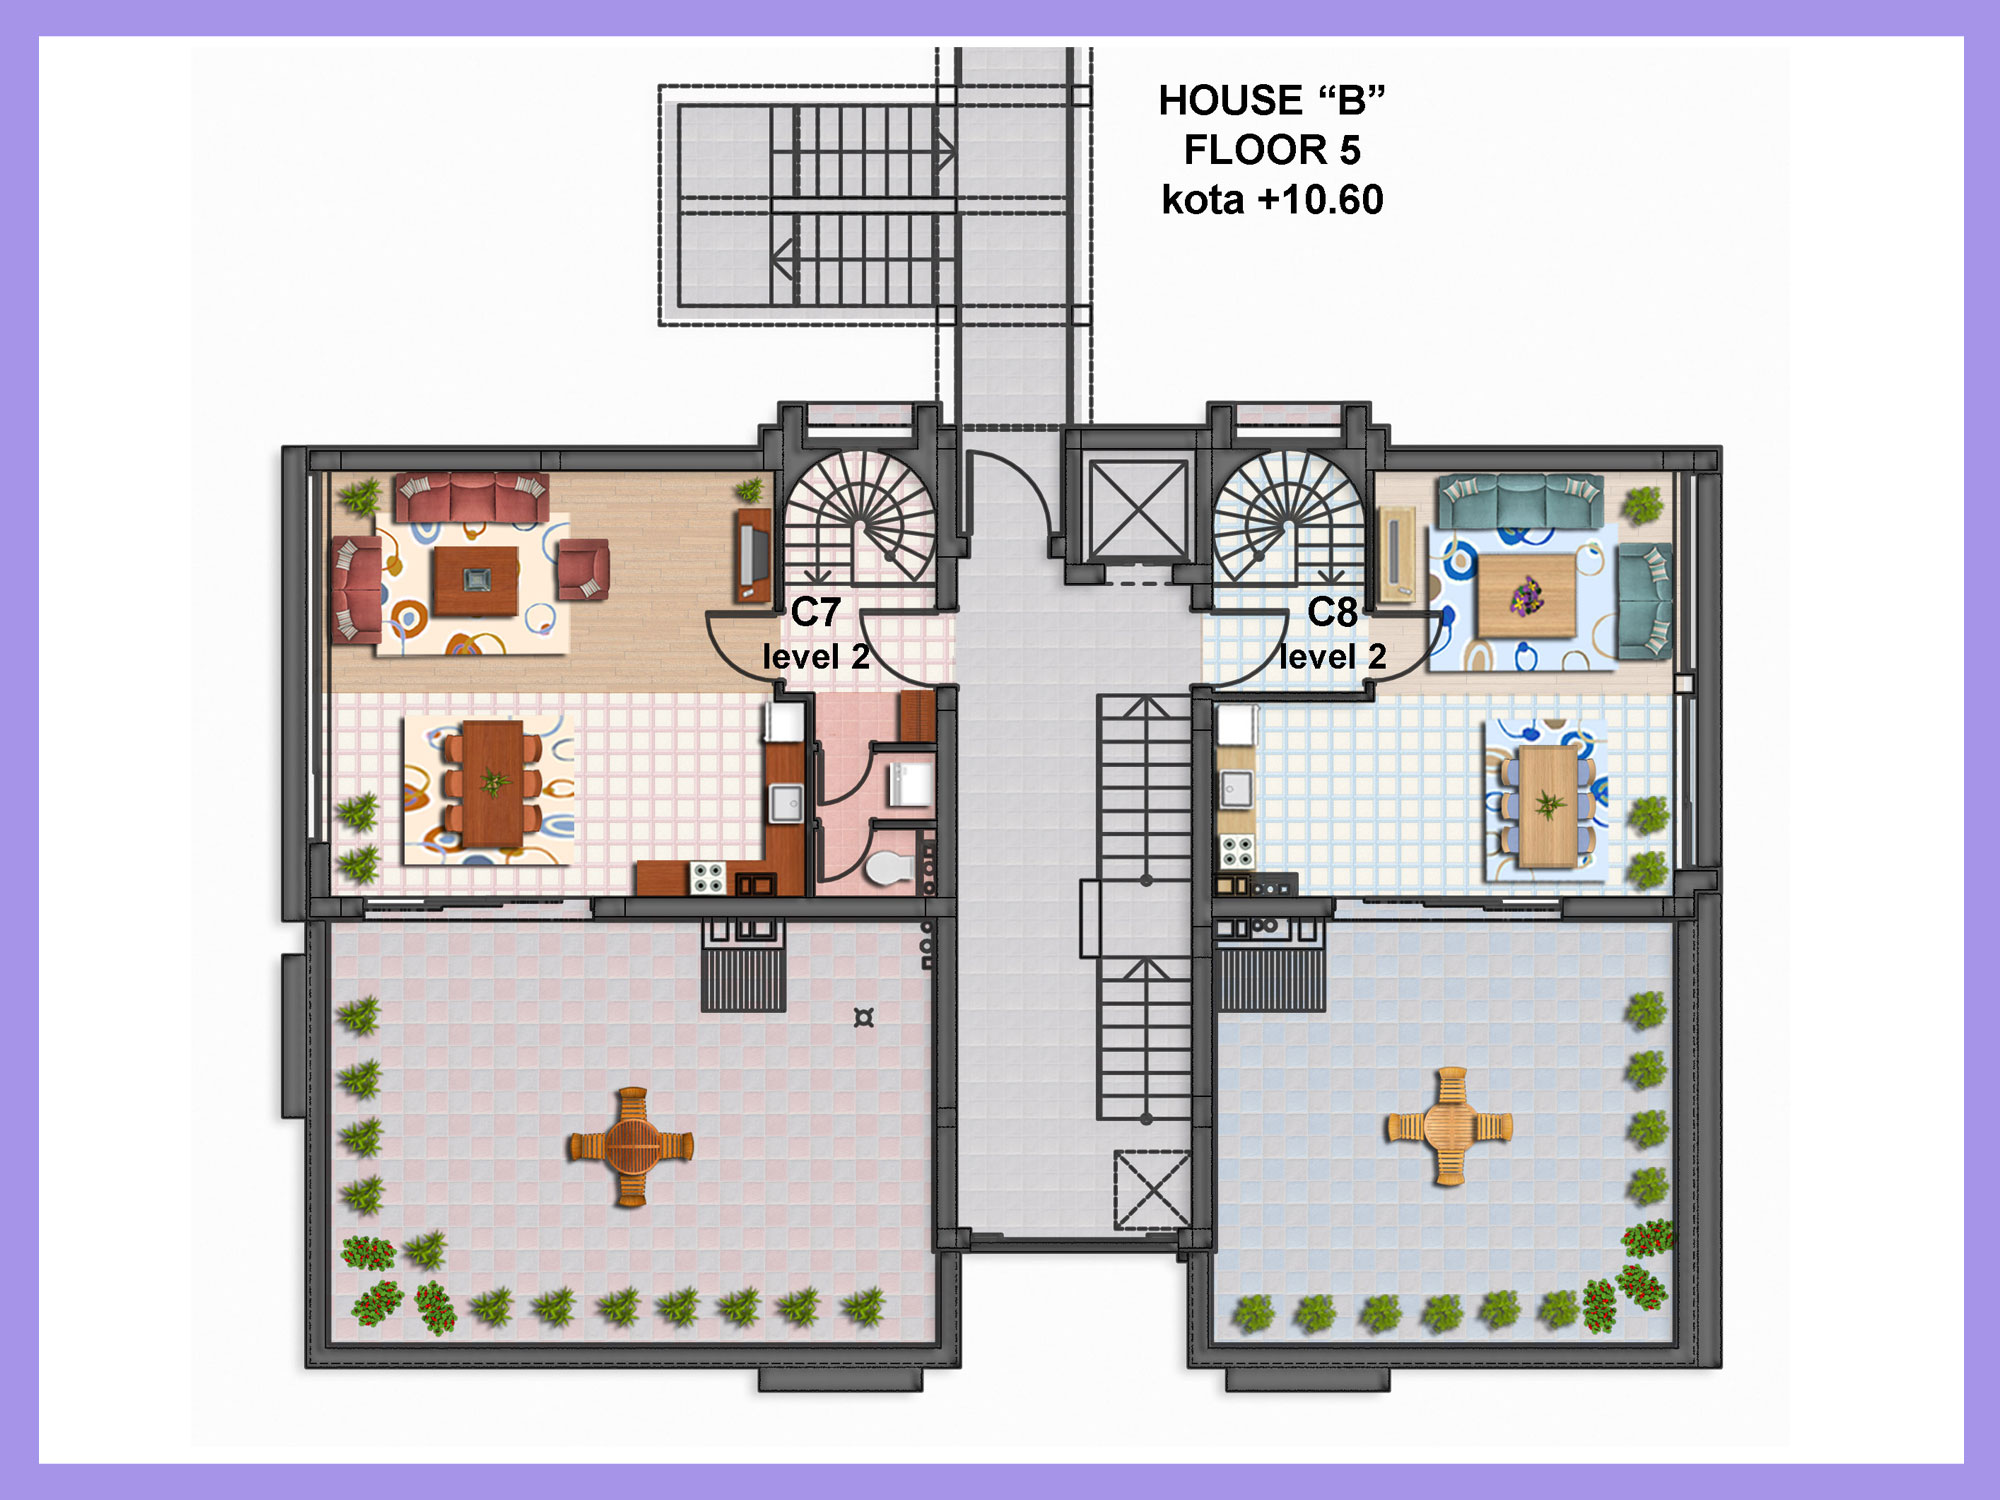 Maisonette house plans house plans for Maisonette house plans